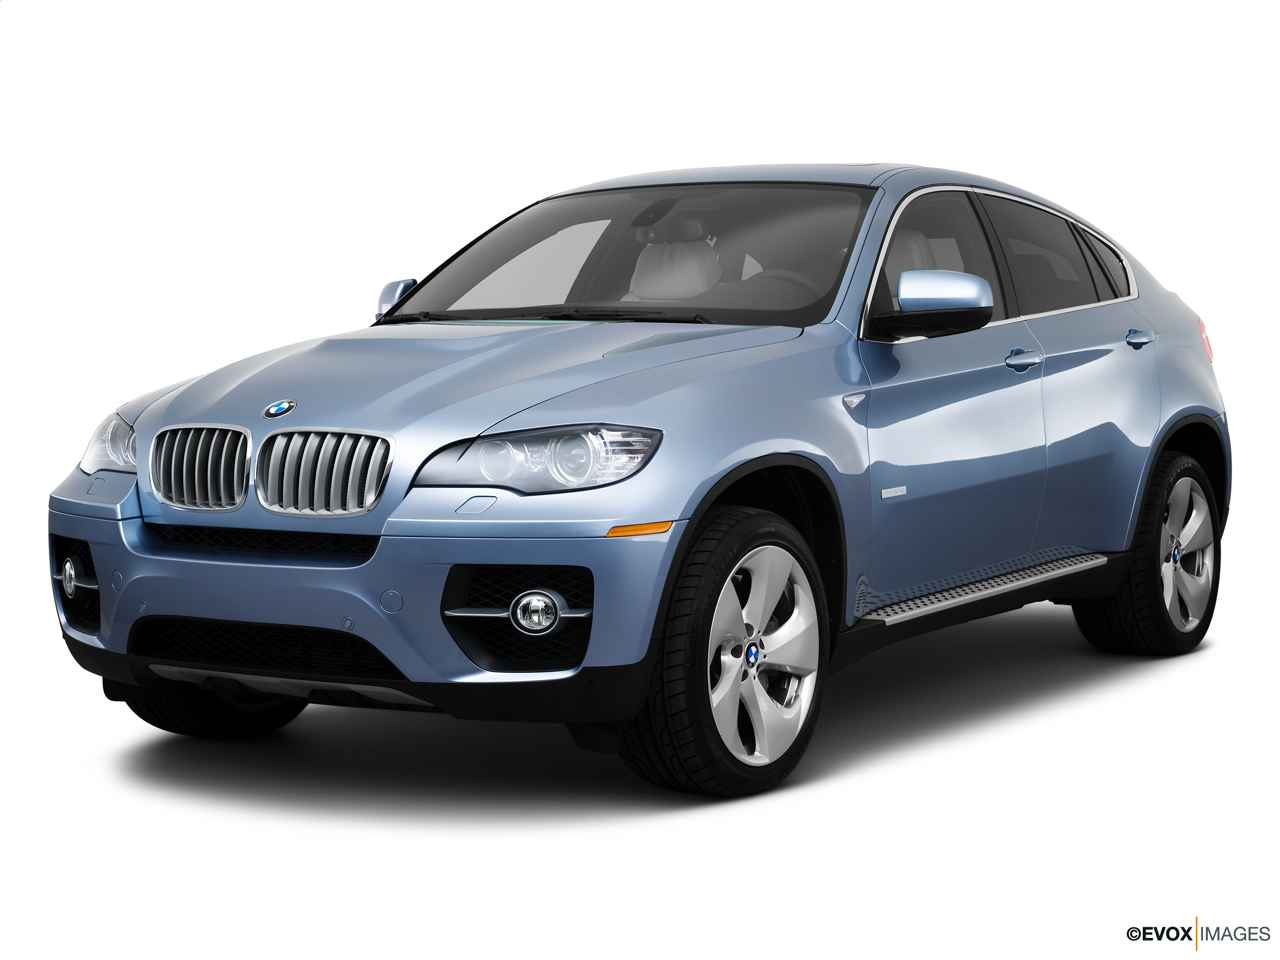 2010 BMW X6 Hybrid Base 114 - no description